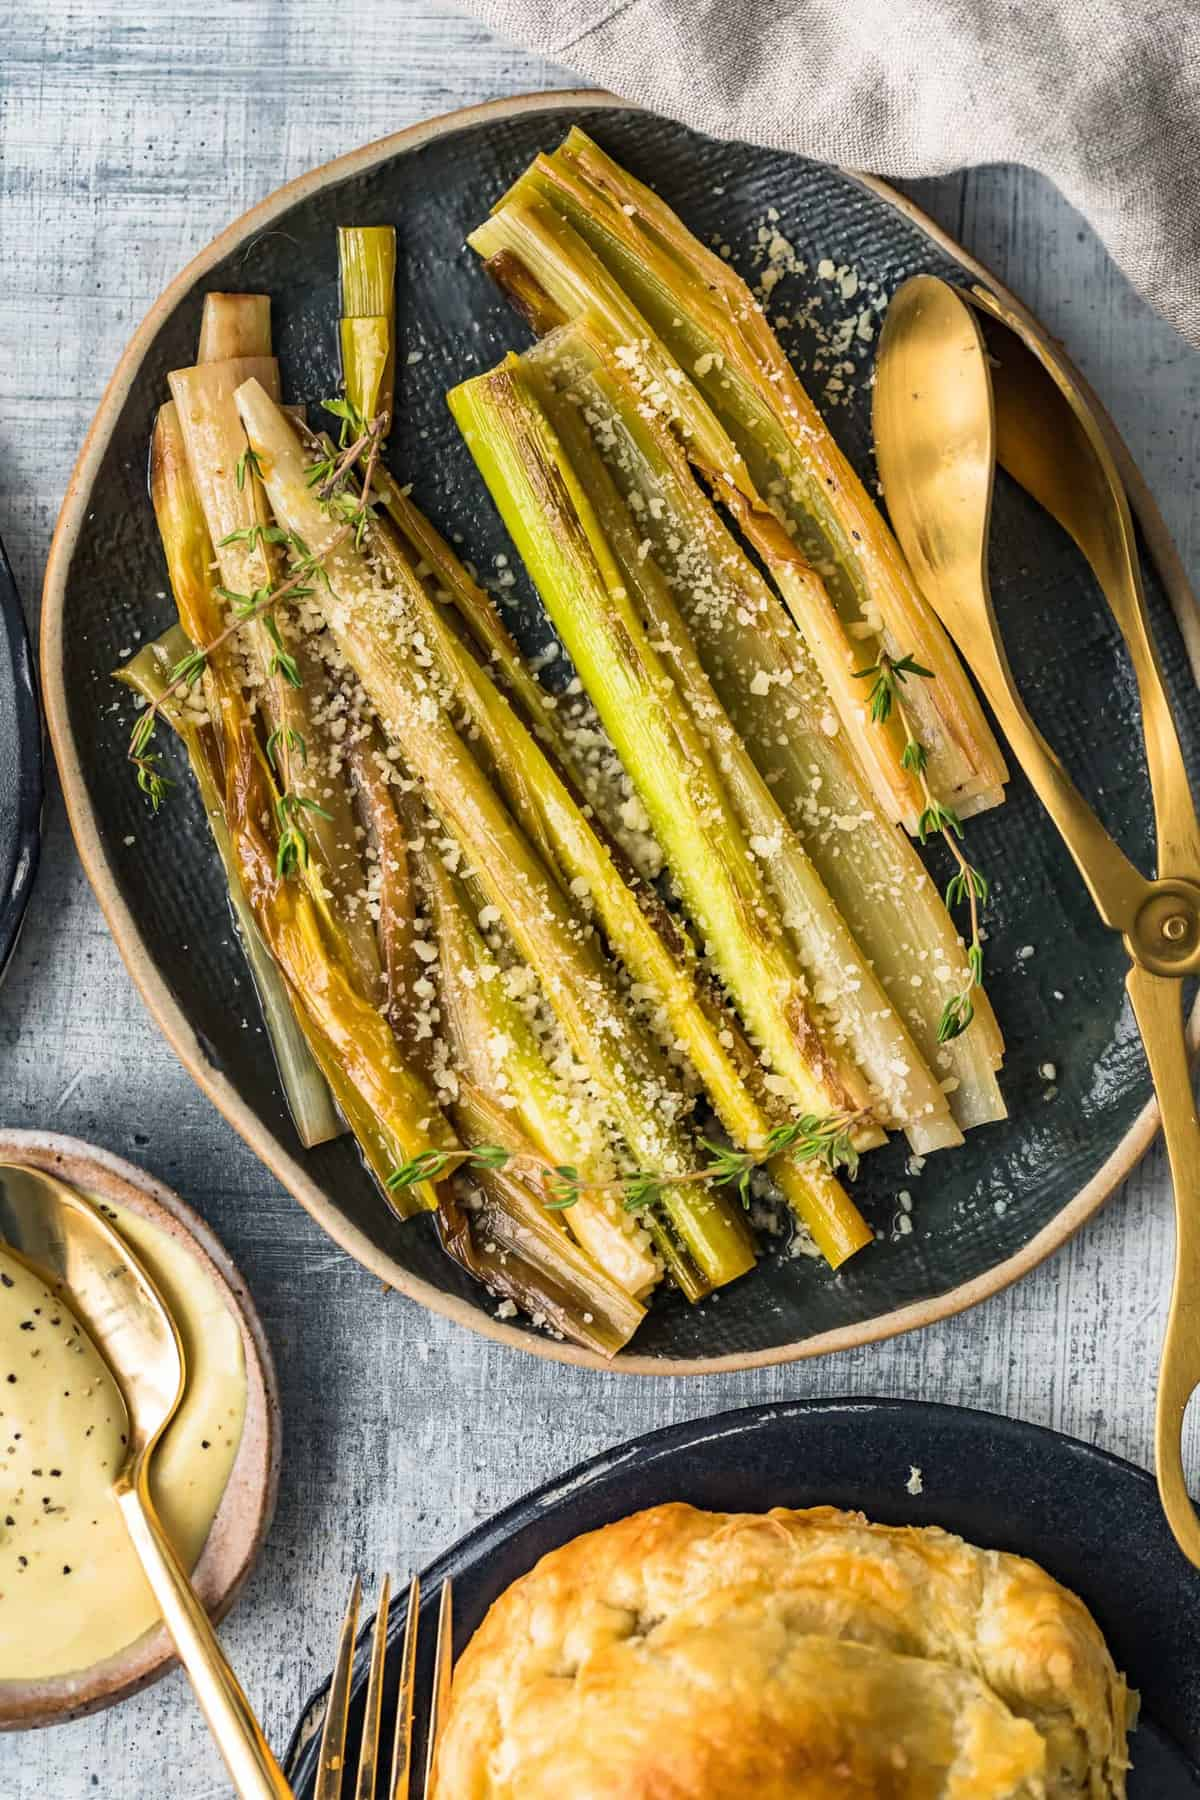 Sauteed Leeks with Parmesan ready to east